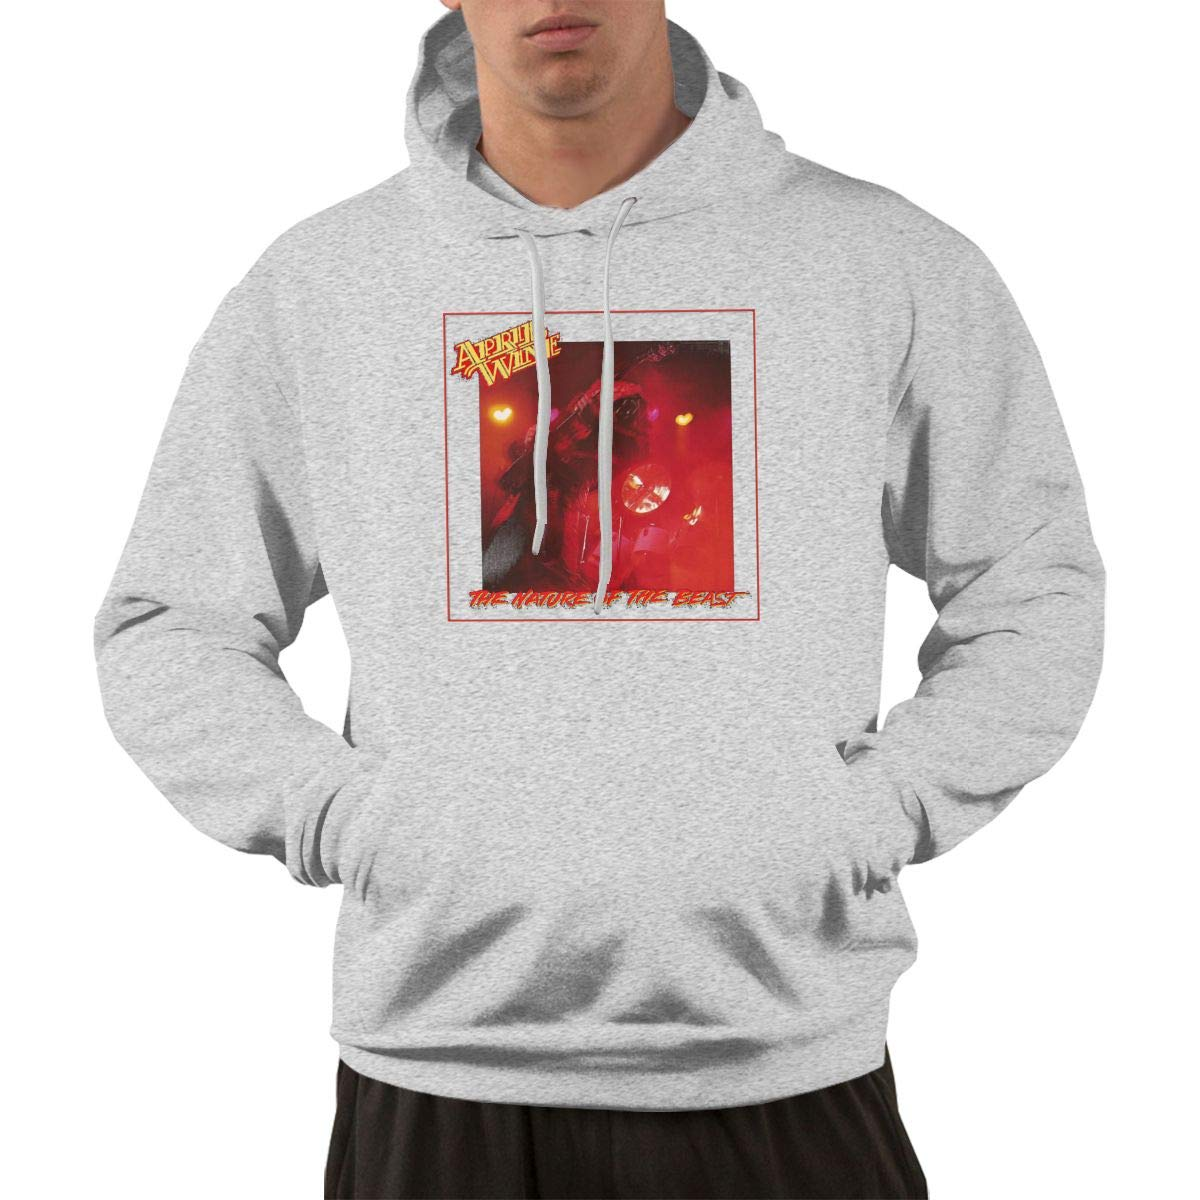 Erman Pullover Warm Gray Print April Wine Music Band Cover Hooded Shirts With Pocket 3